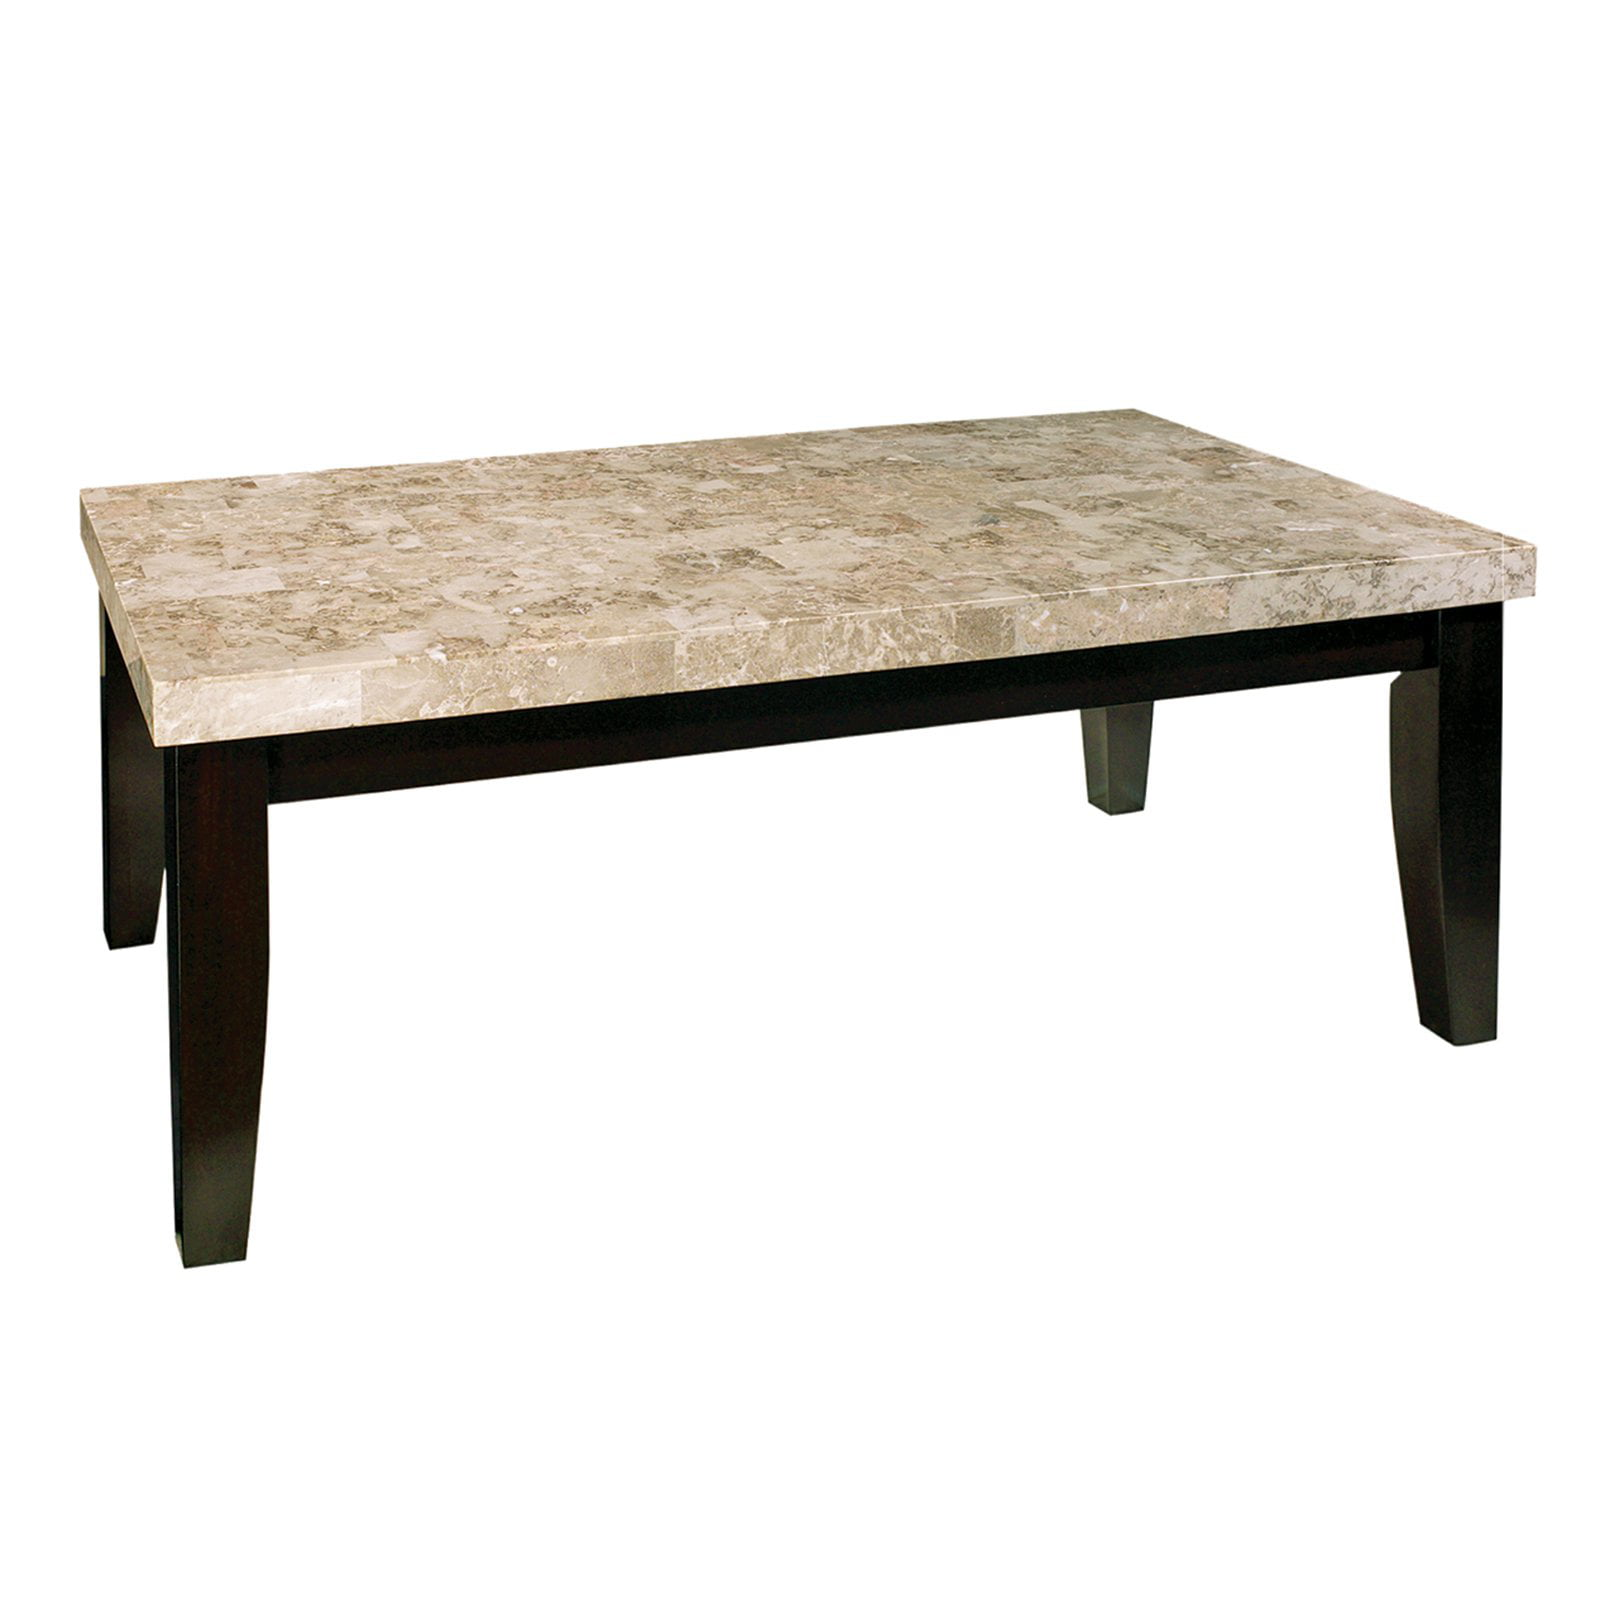 Charmant Steve Silver Monarch Rectangle Marble Top Coffee Table   Walmart.com